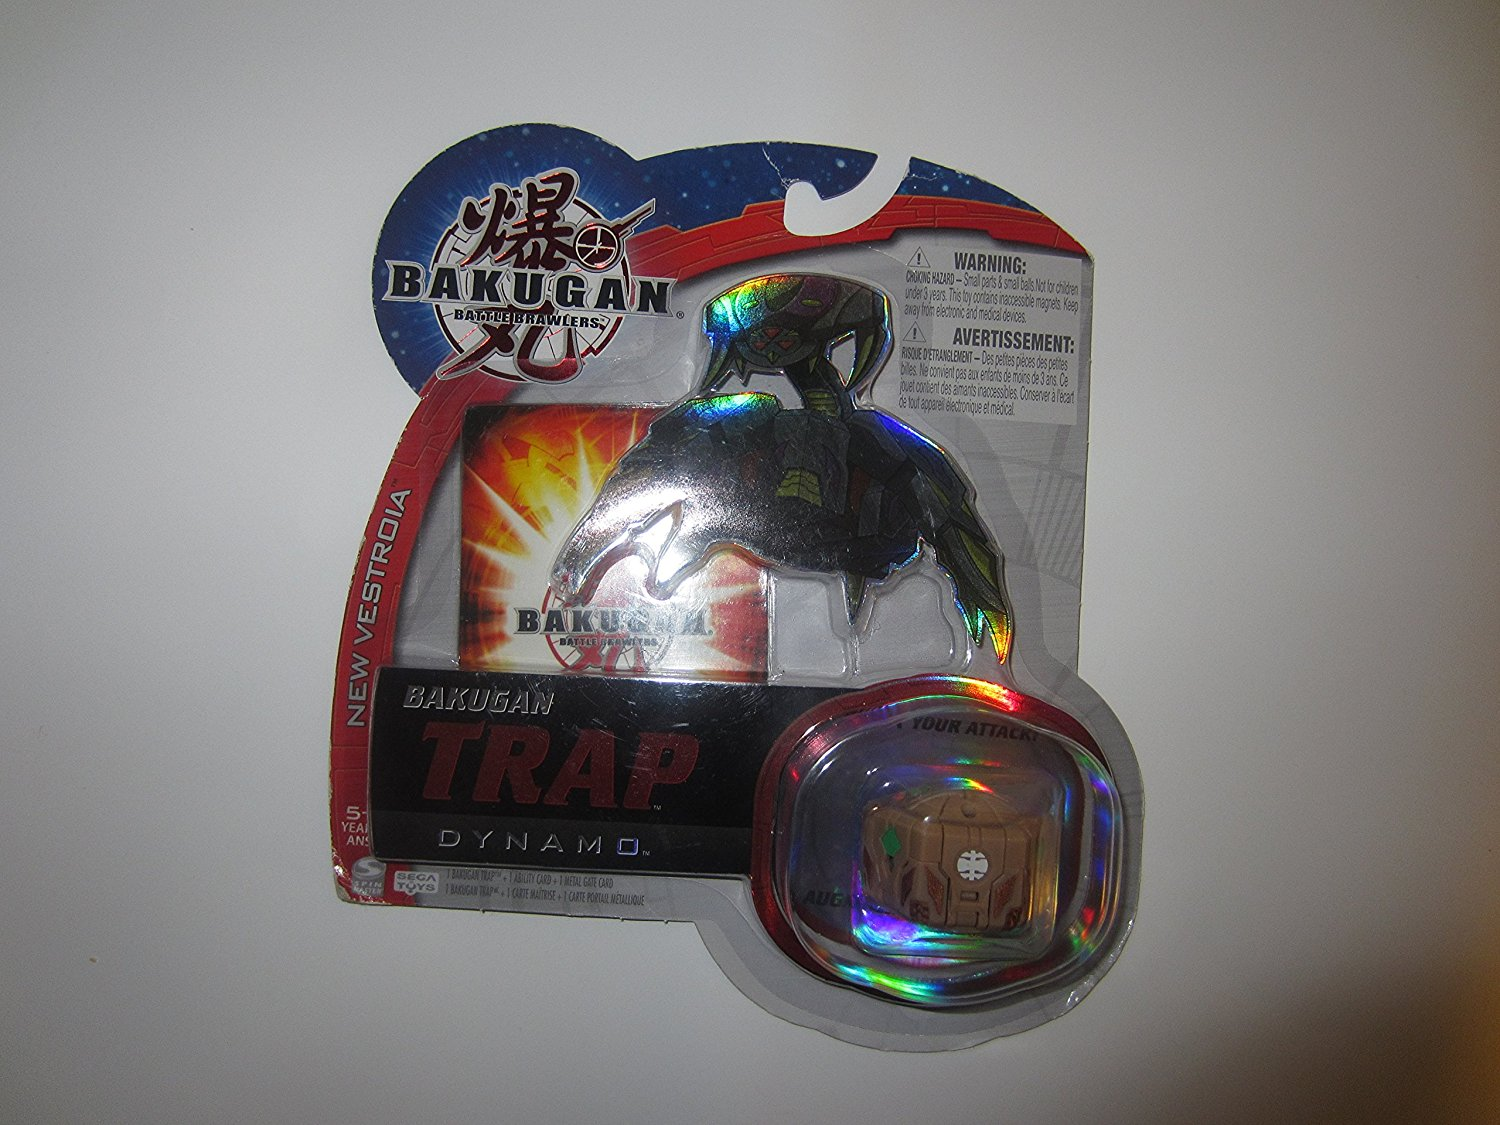 Bakugan Battle Brawlers New Vestroia Bakugan Trap- Gray Haos Dynamo